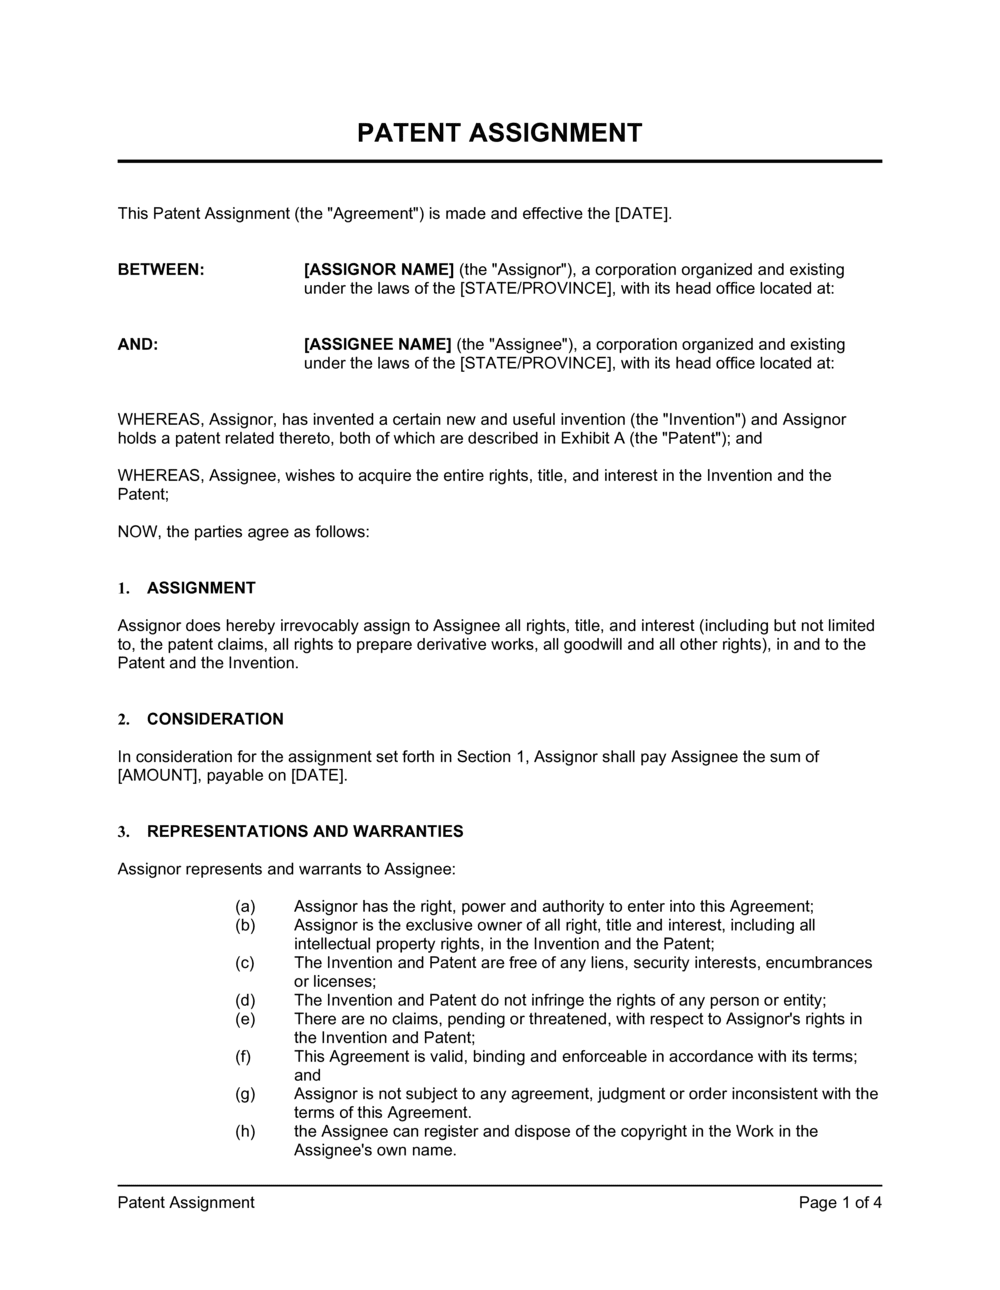 Business-in-a-Box's Patent Assignment Template